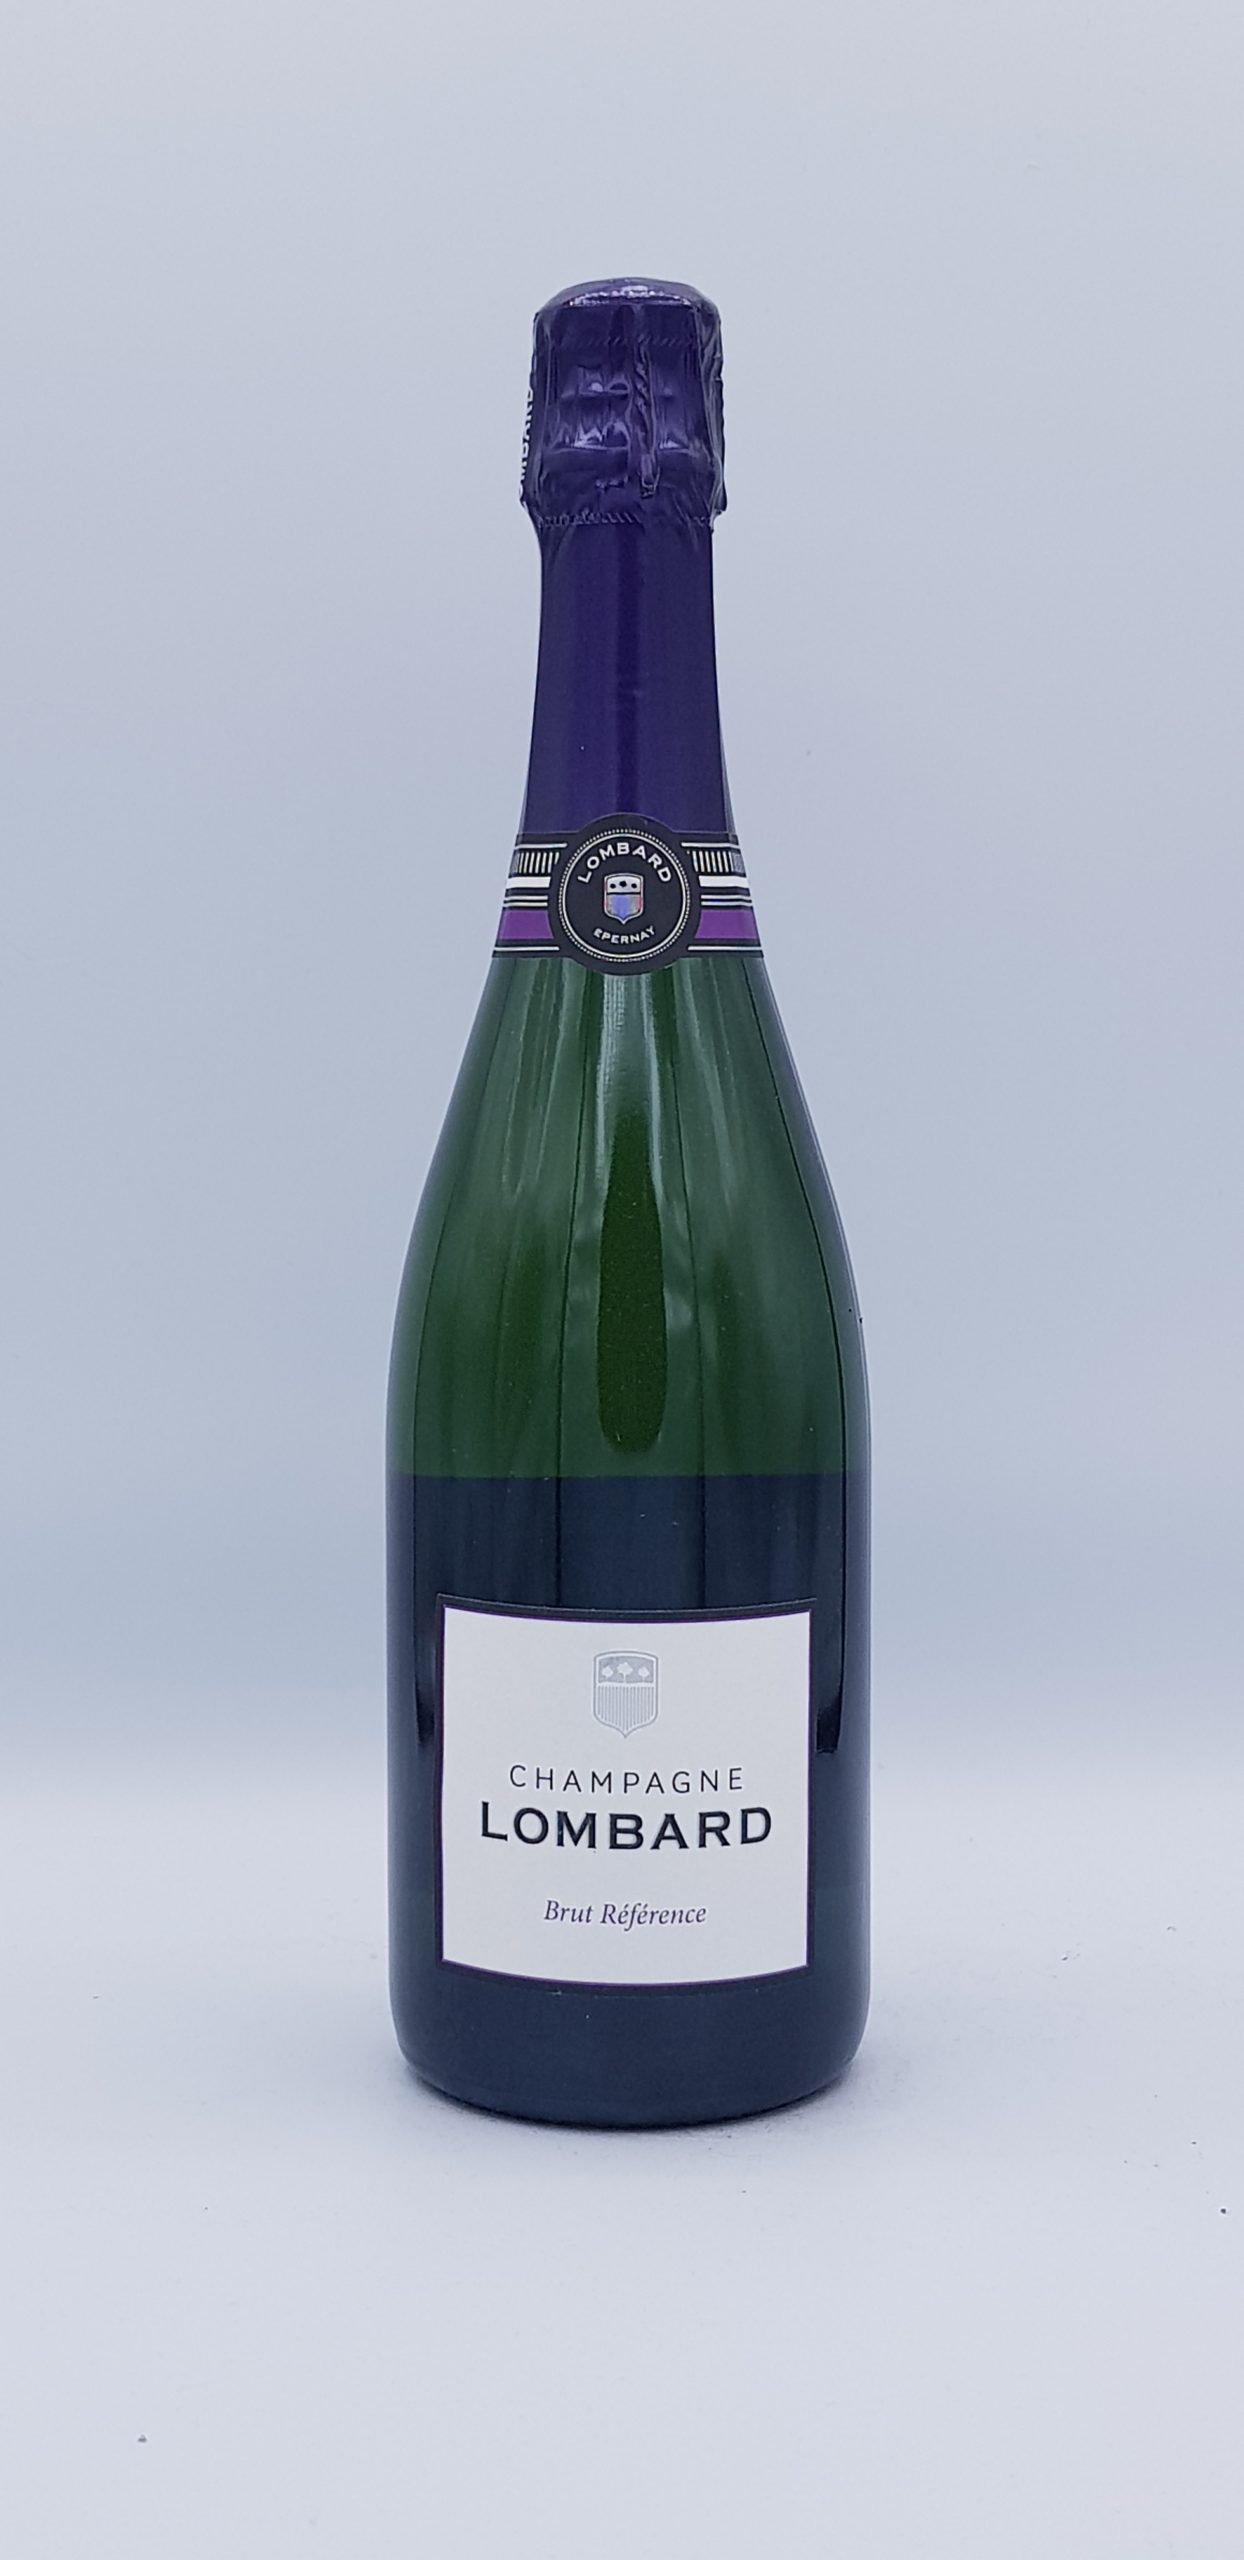 Champagne Lombard Brut Reference